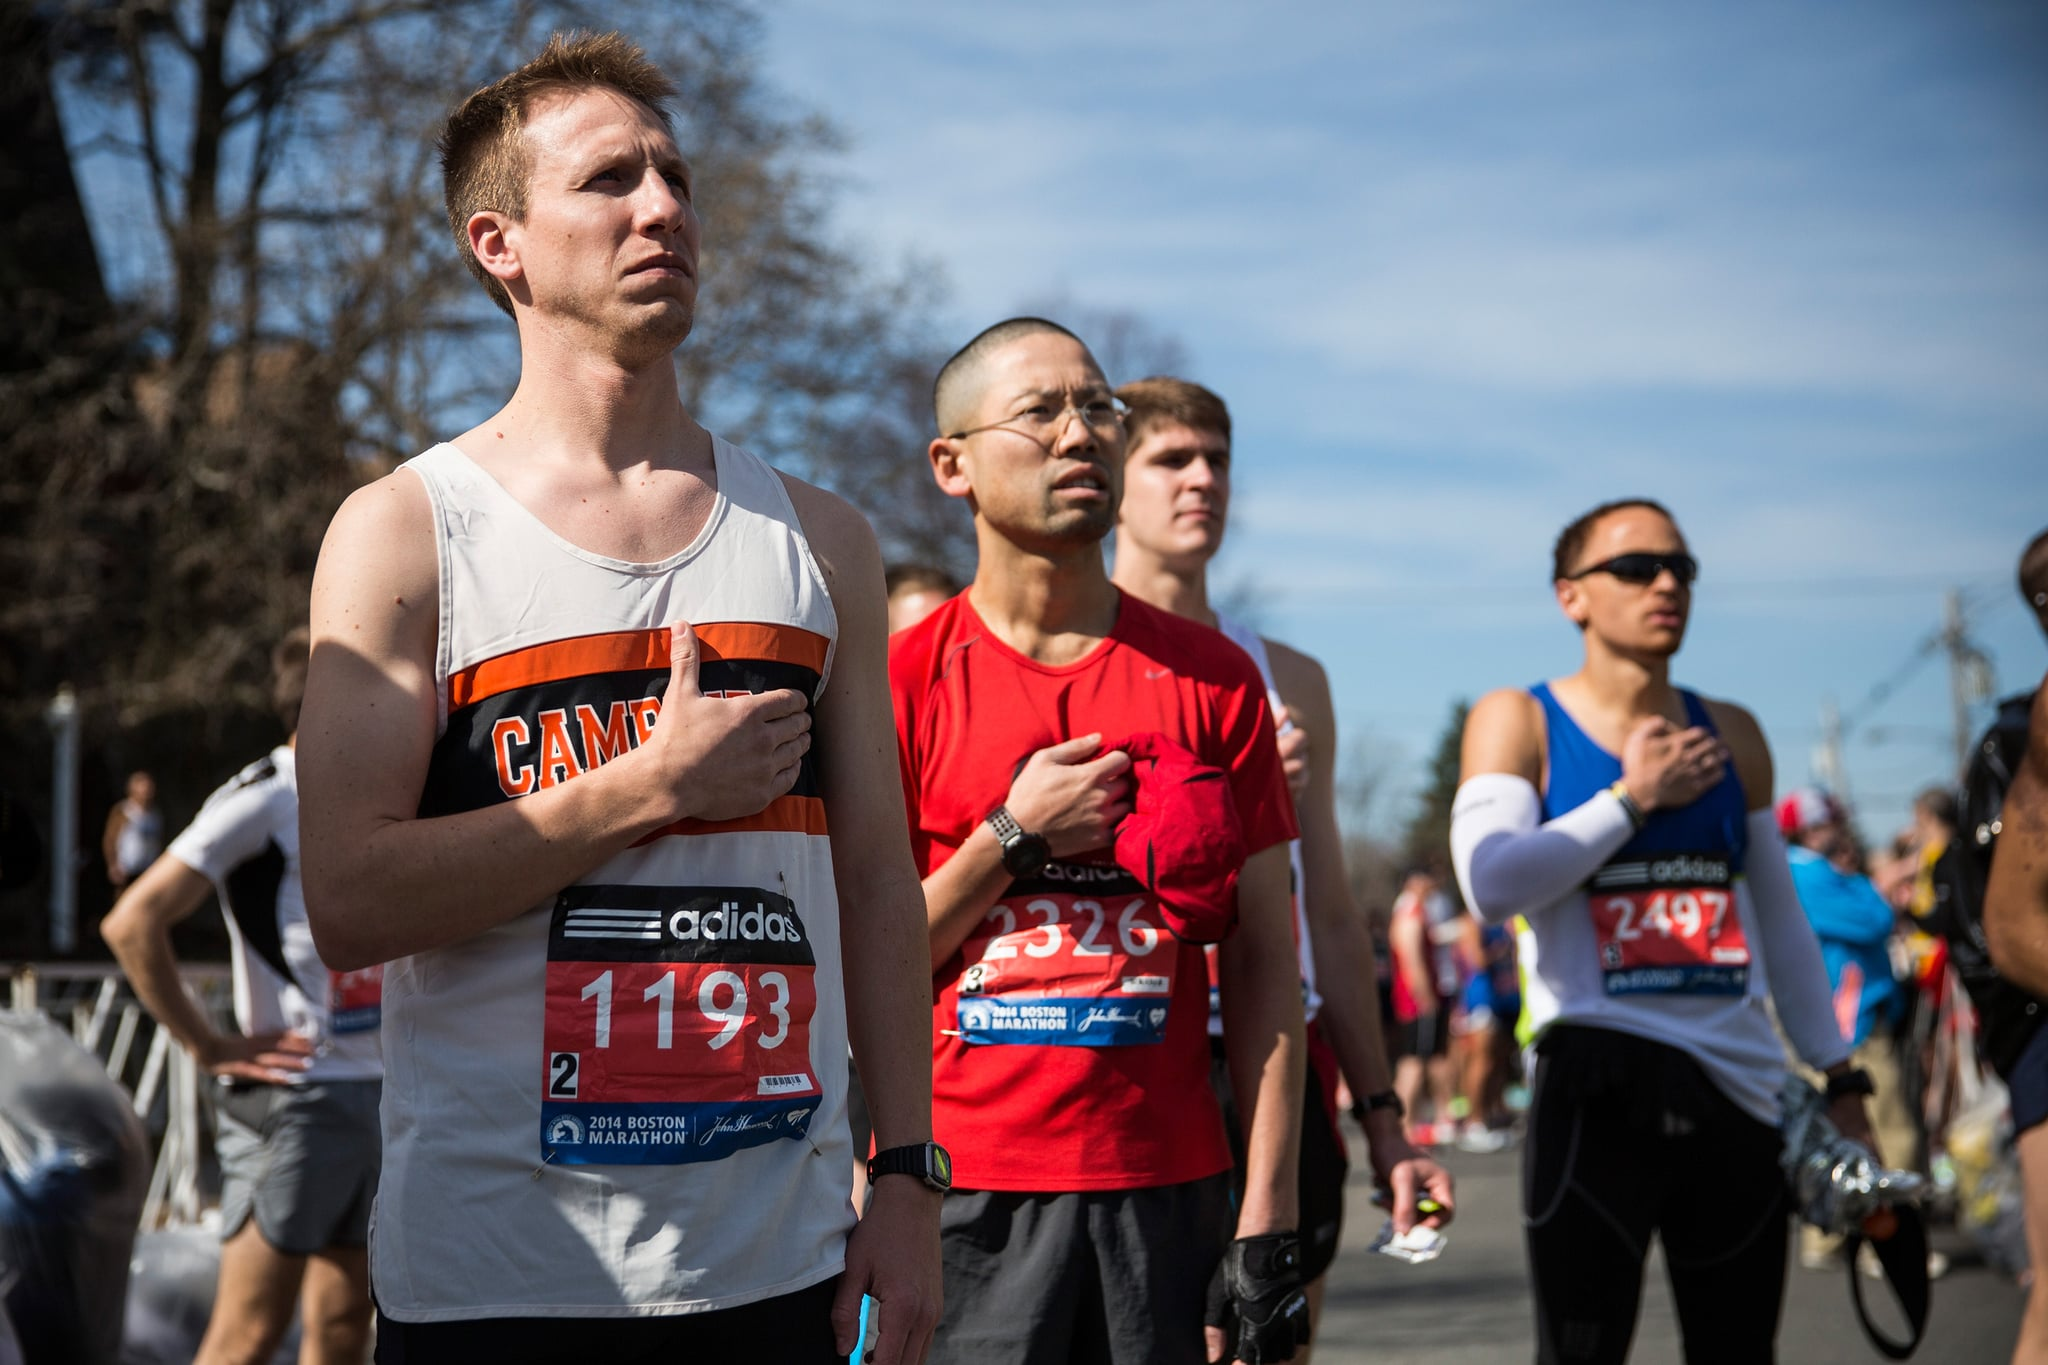 Runners placed their hands over their hearts for the national anthem.